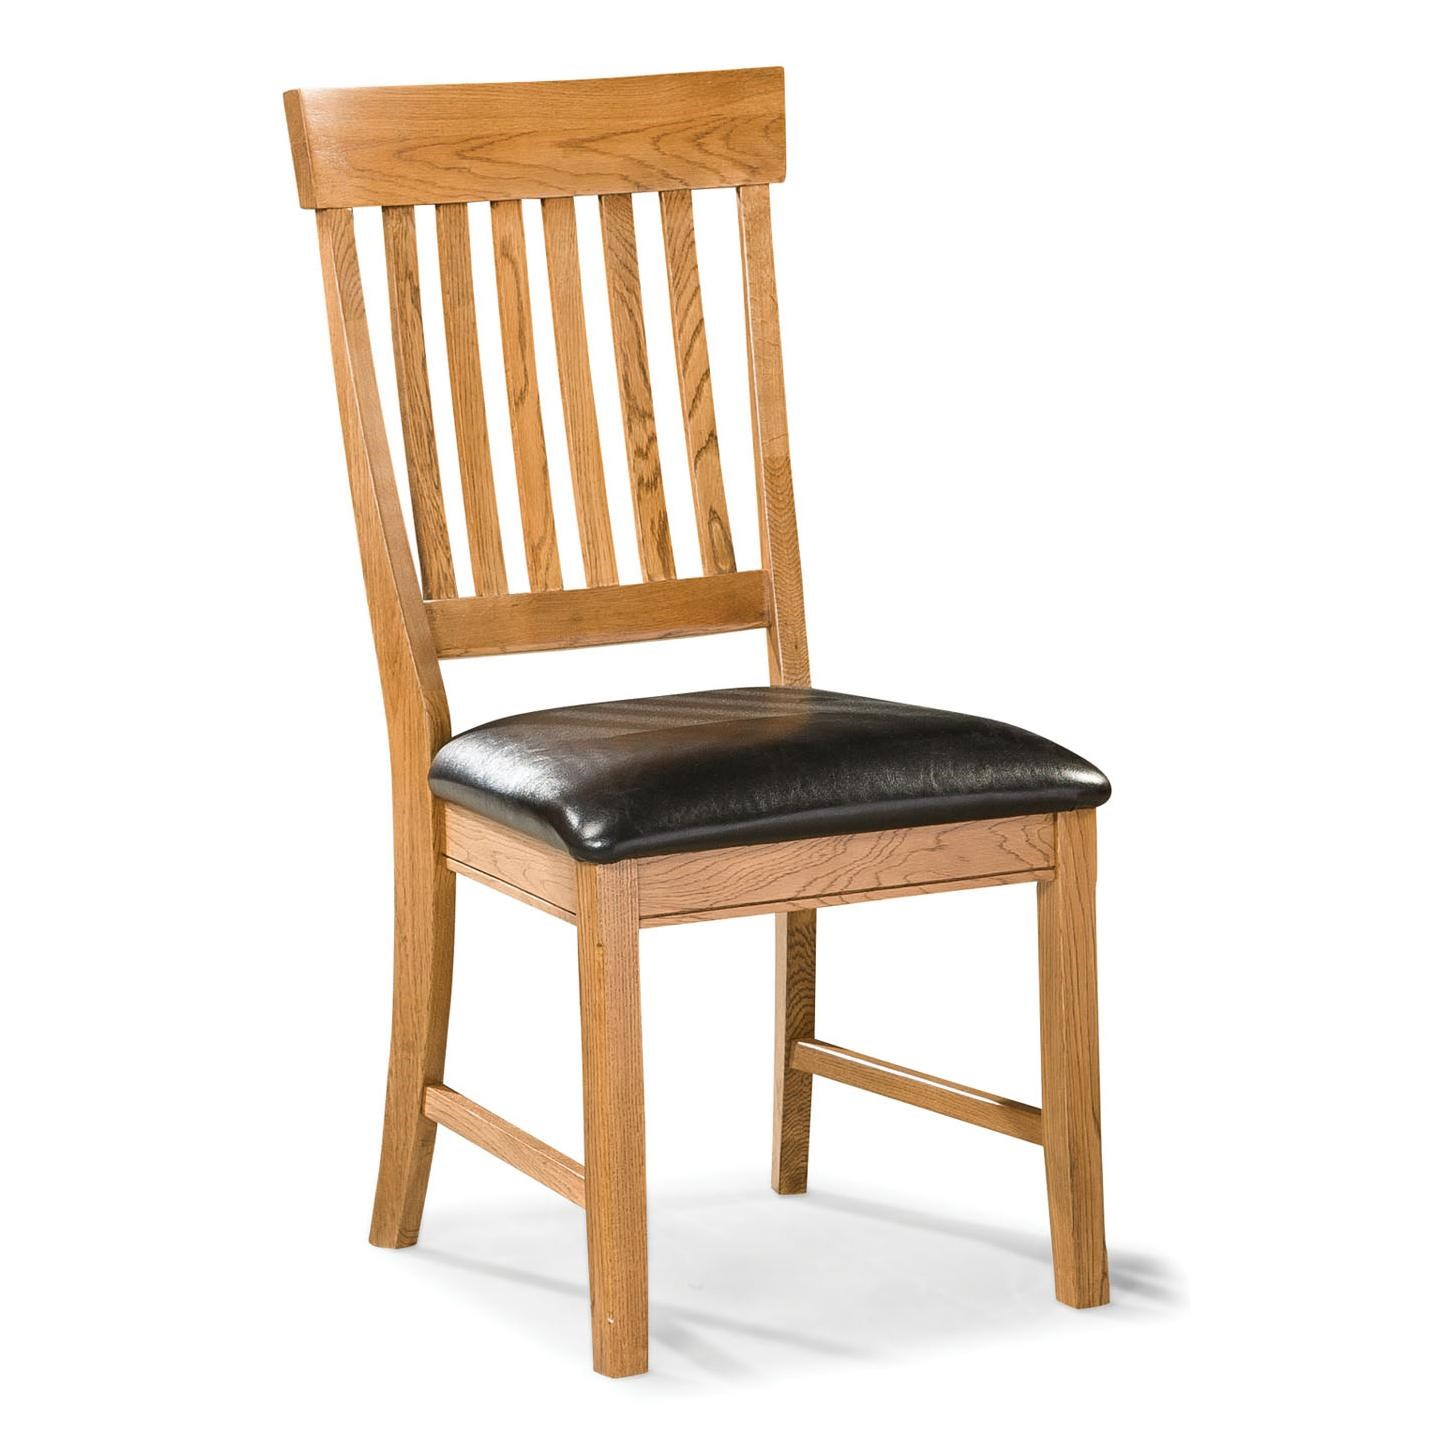 Dining Chair with Slat Back and Cushion